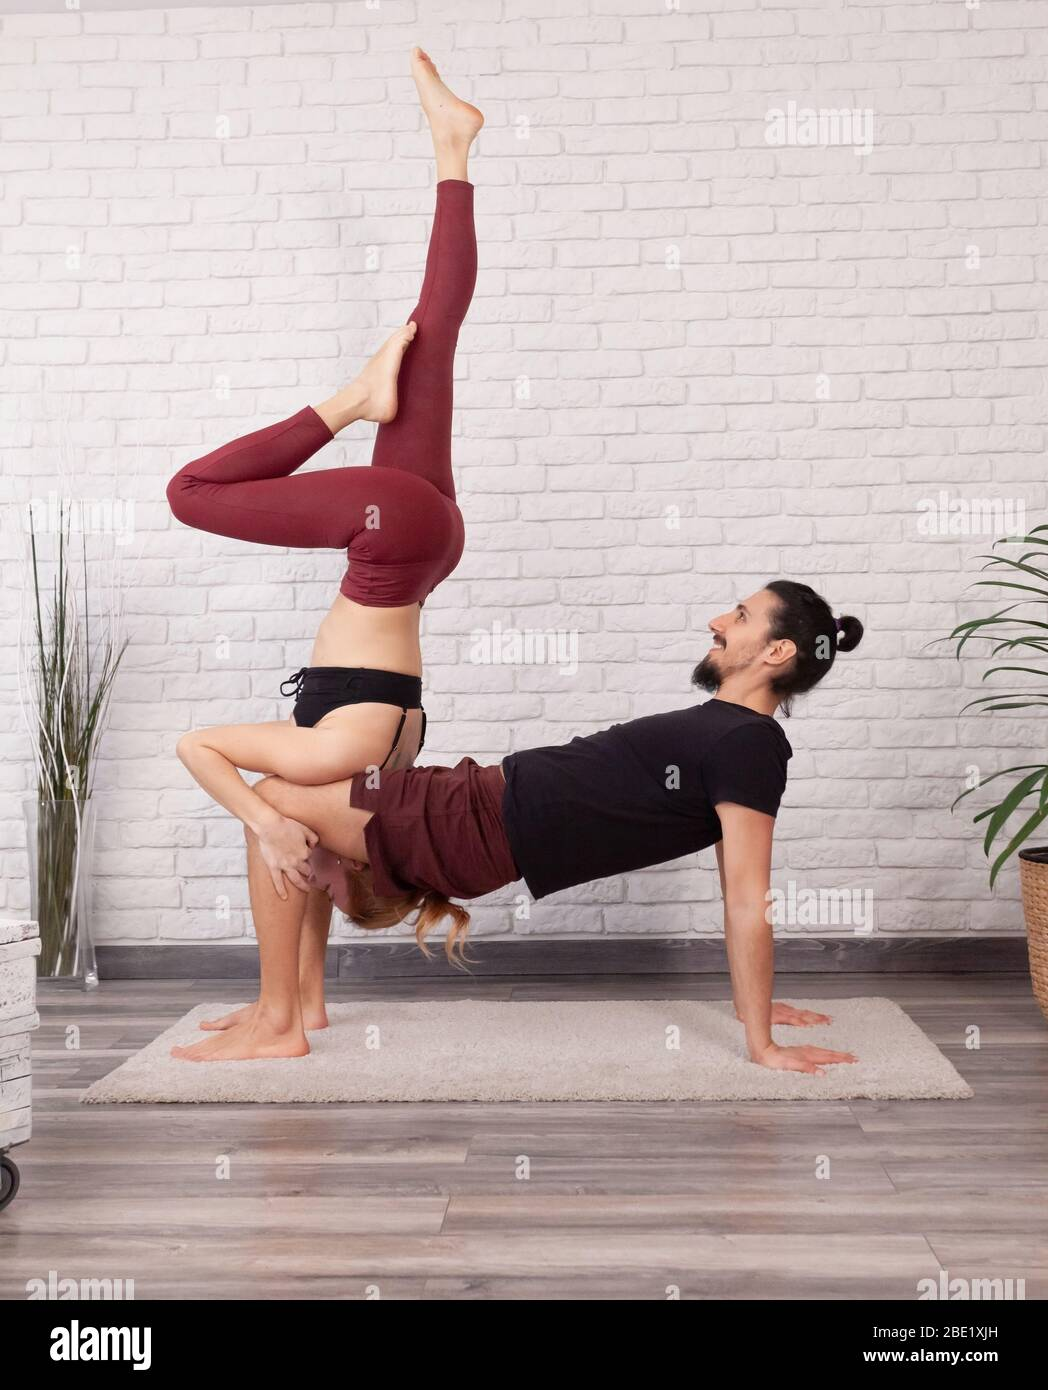 Young Couple Having Fun At Home With Some Acro Yoga Poses In Different Places Stock Photo Alamy